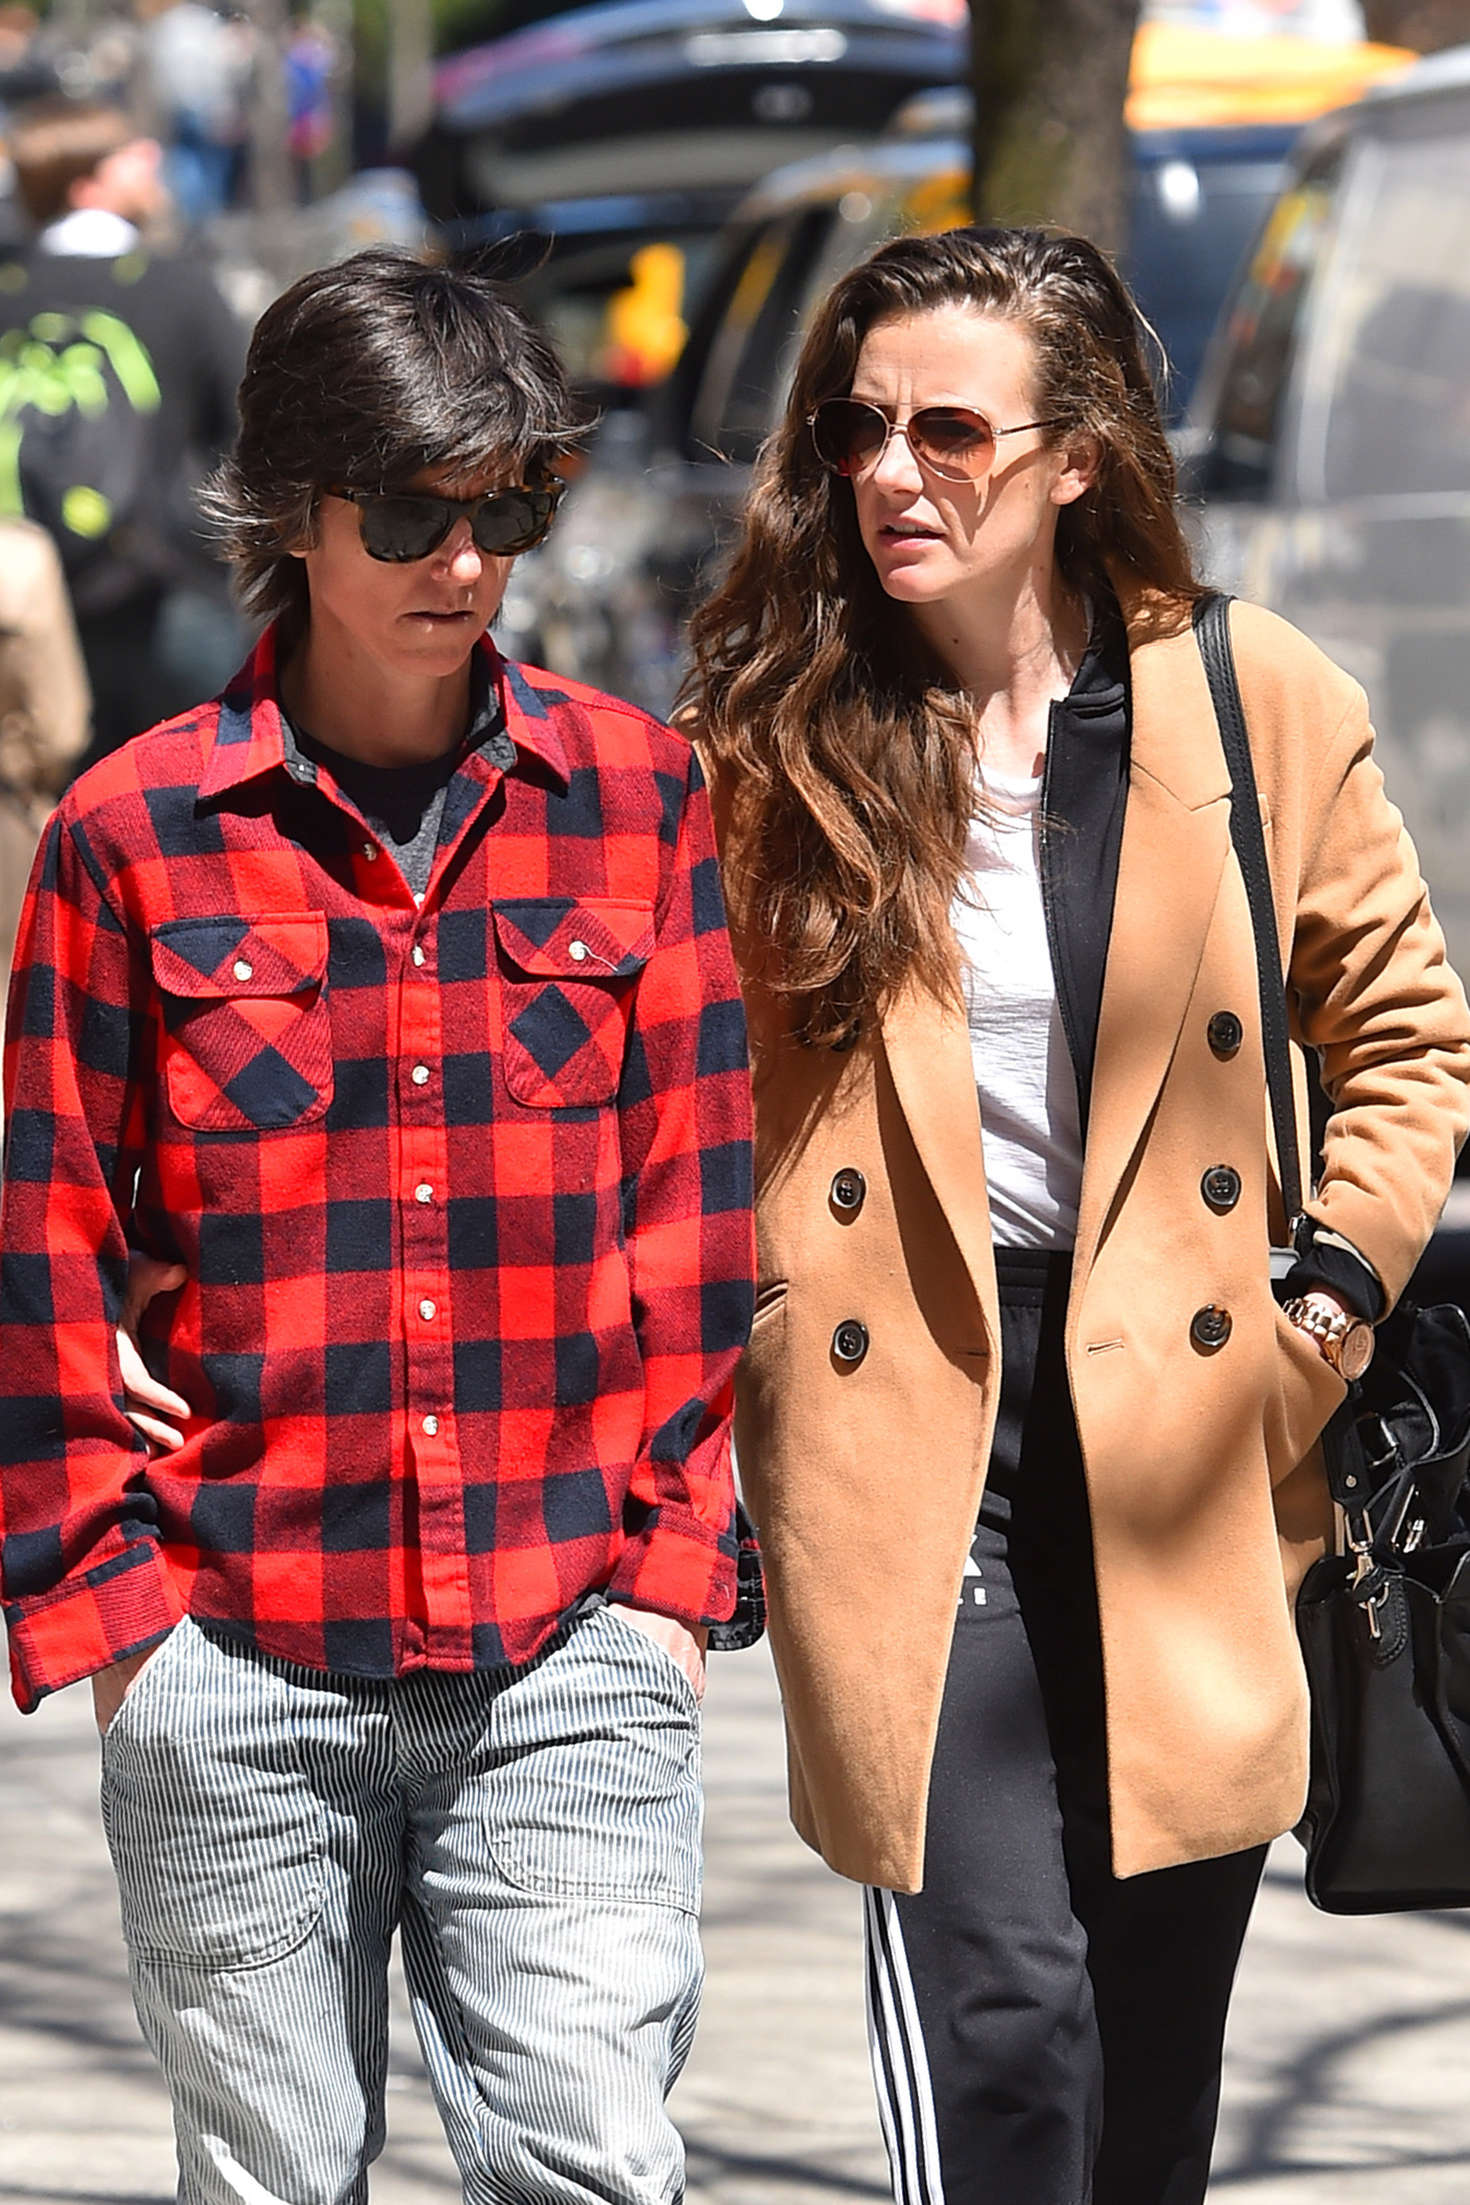 Stephanie Allynne and Tig Notaro out in New York